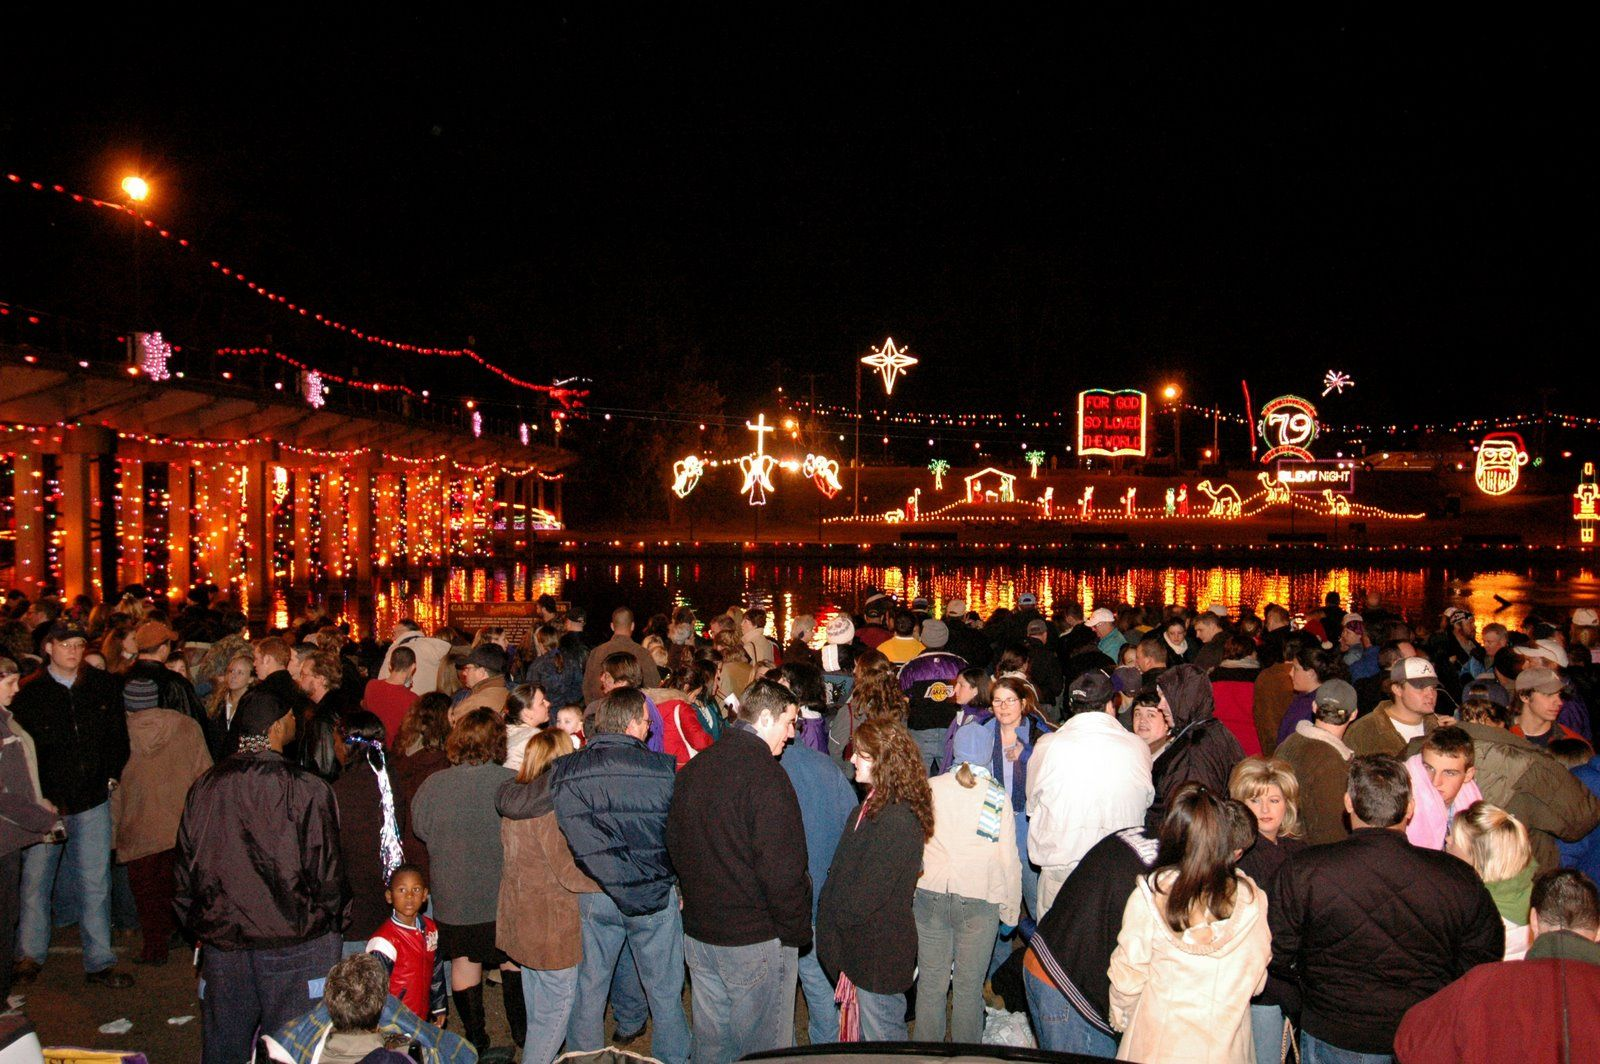 Natchitoches Christmas Festival.Natchitoches Christmas Festival Of Lights On Cane River Lake